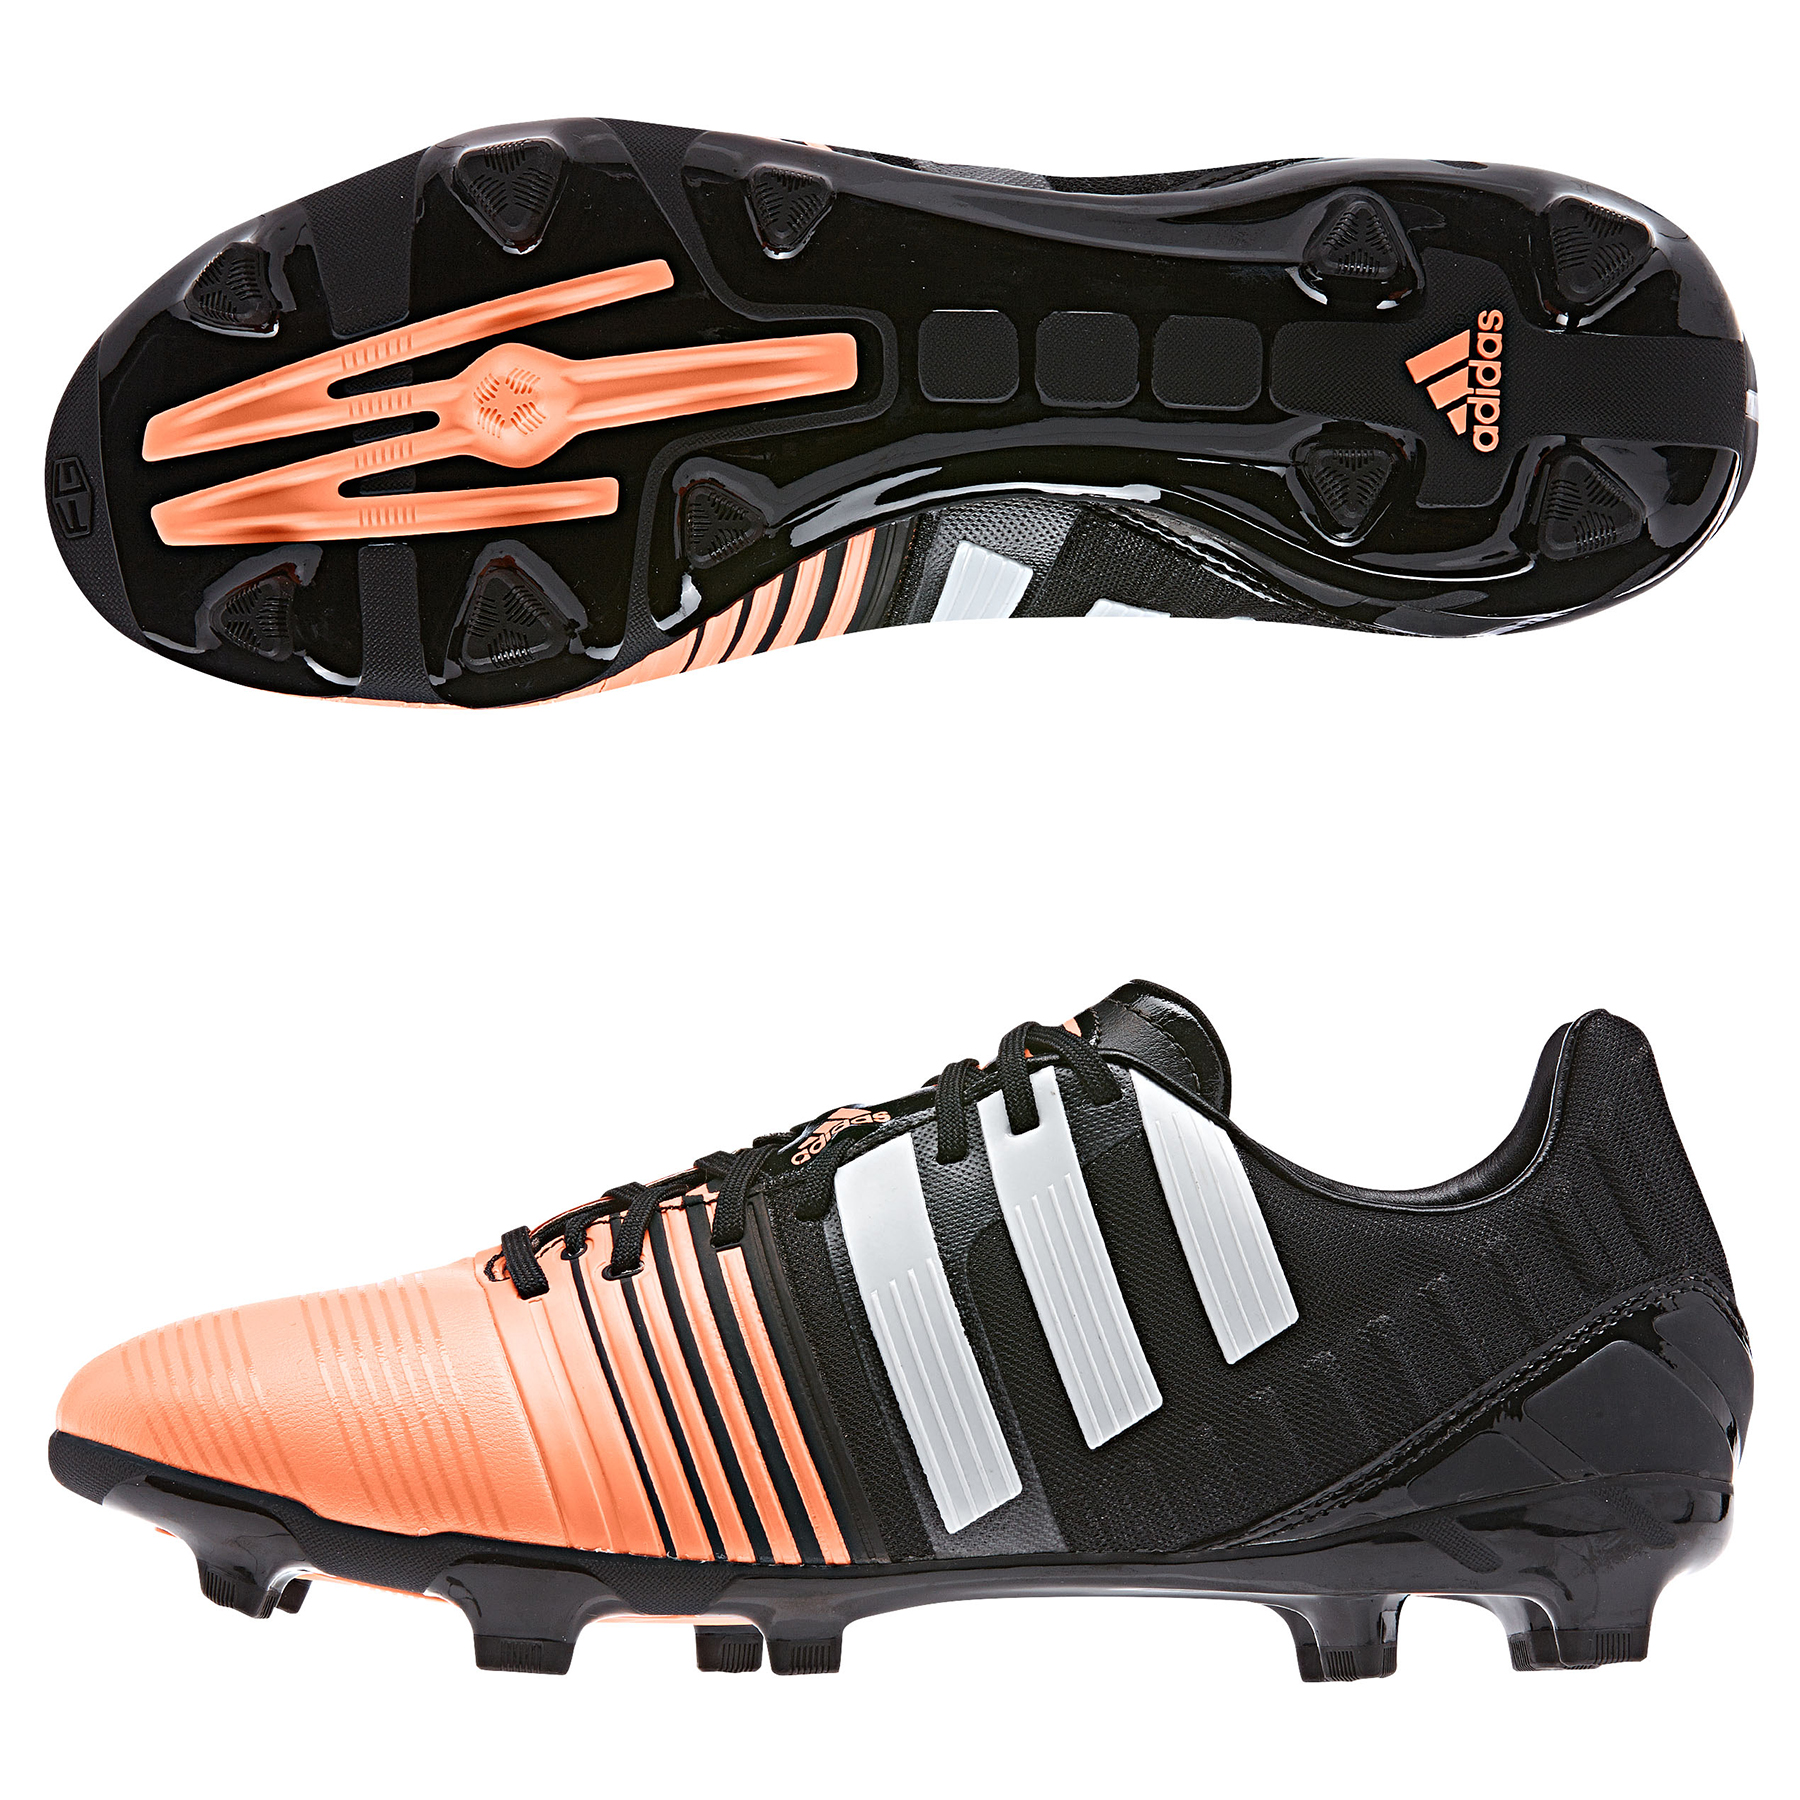 Adidas Nitrocharge 2.0 Firm Ground Football Boots Black